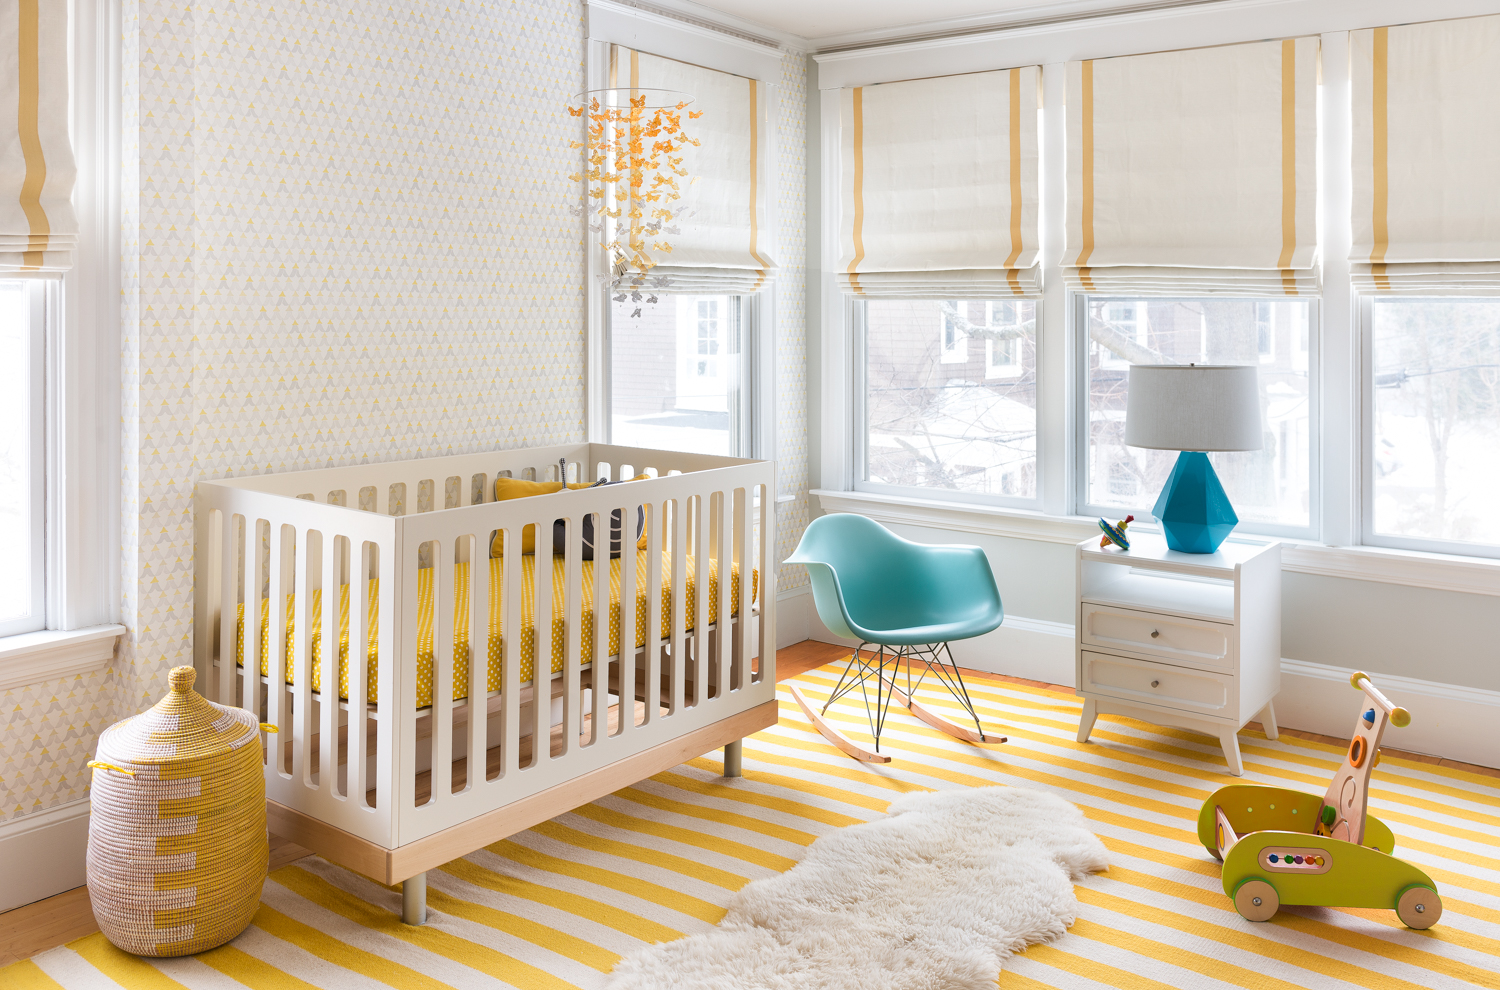 mandarina studio_yellow and gray nursery interior design-003.jpg